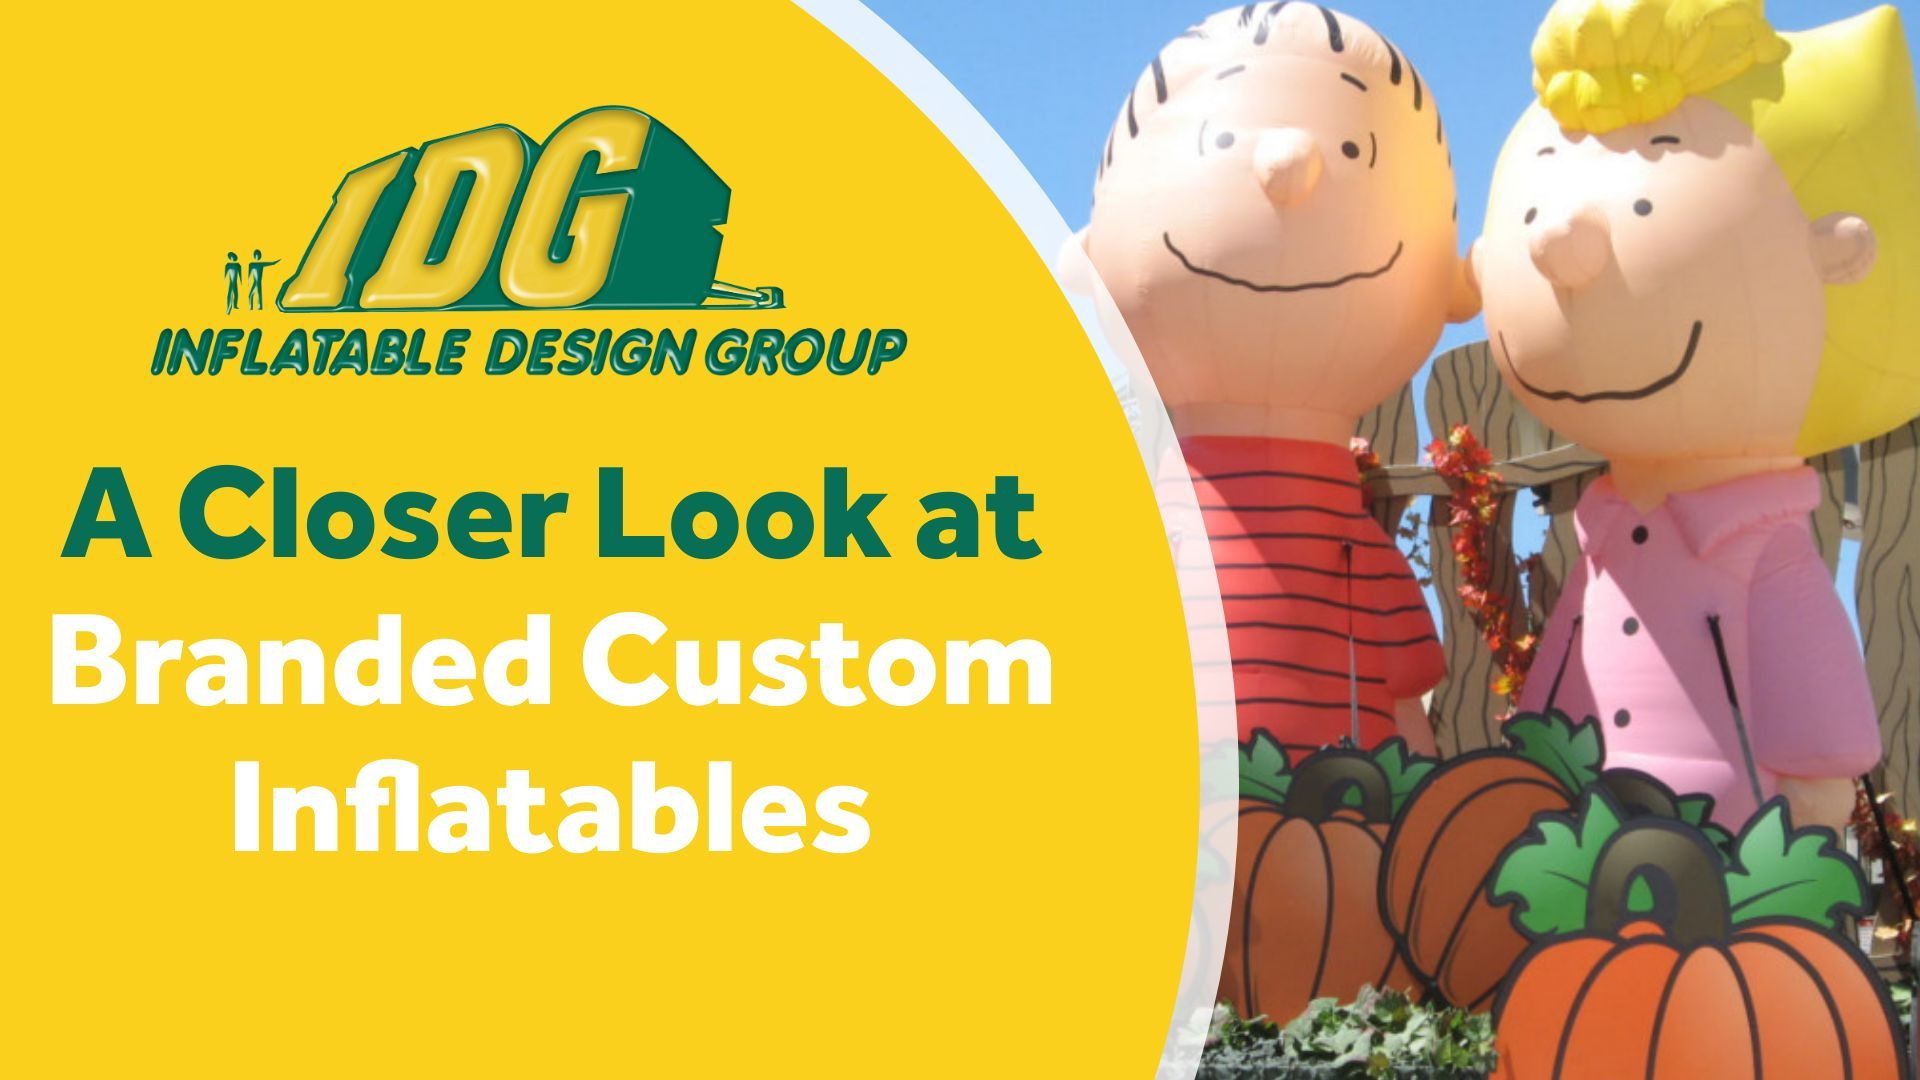 A Closer Look at Branded Custom Inflatables